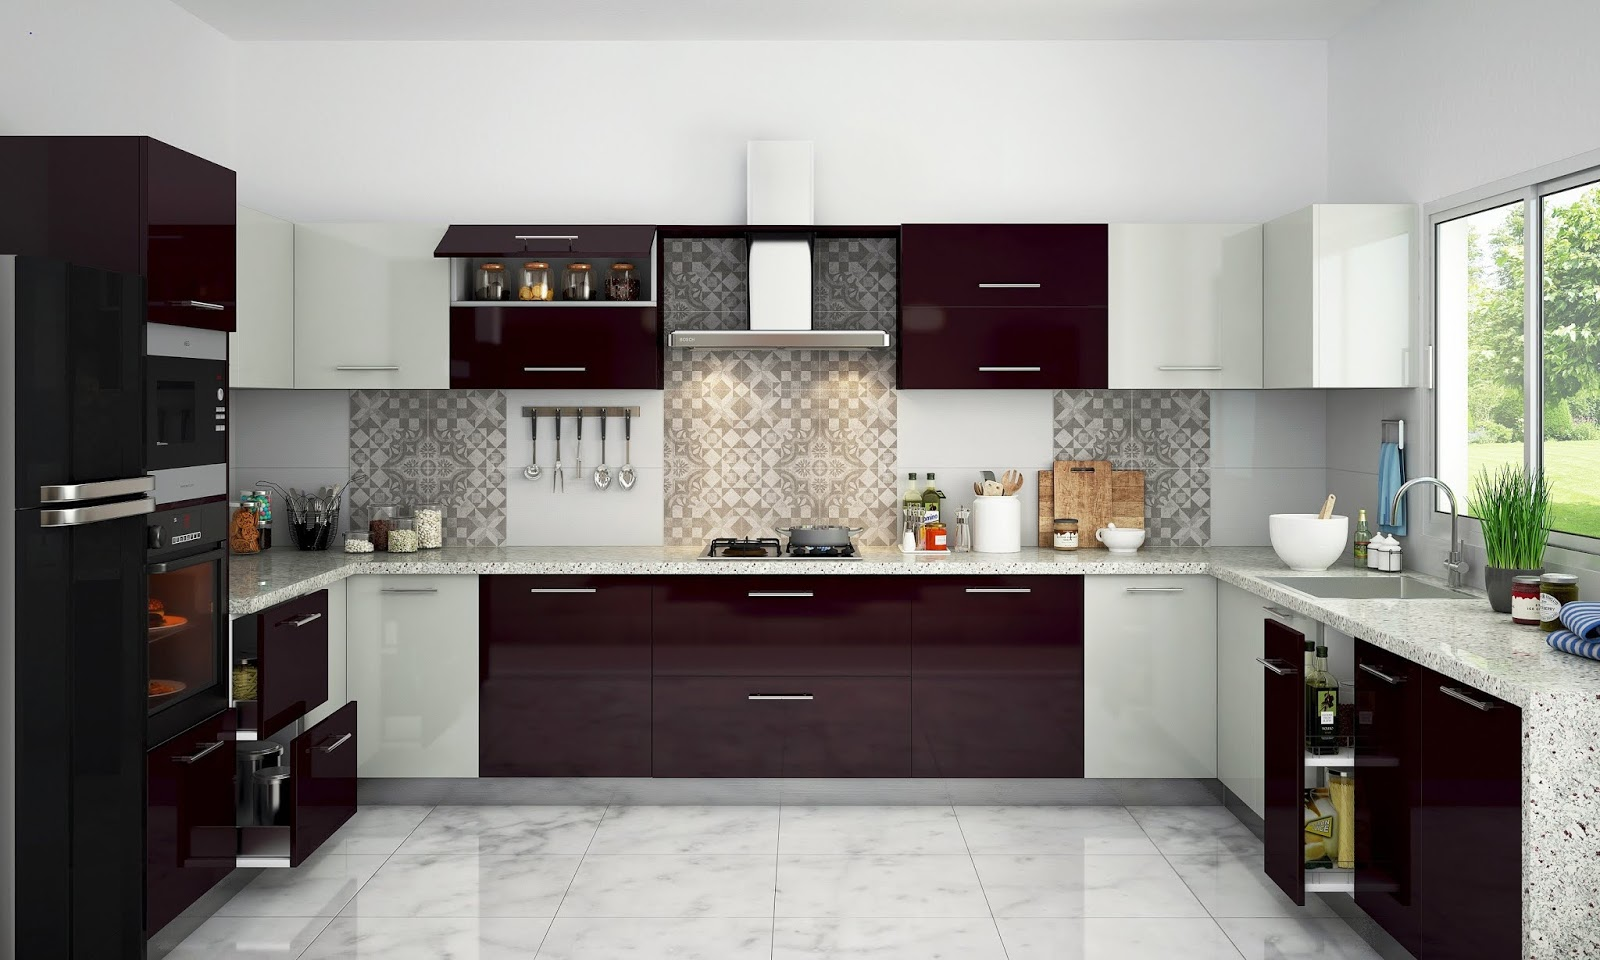 Kitchen Designs And Colors Images 100 Modular Indian Kitchen Designs Ideas Colors Cabinets 2019